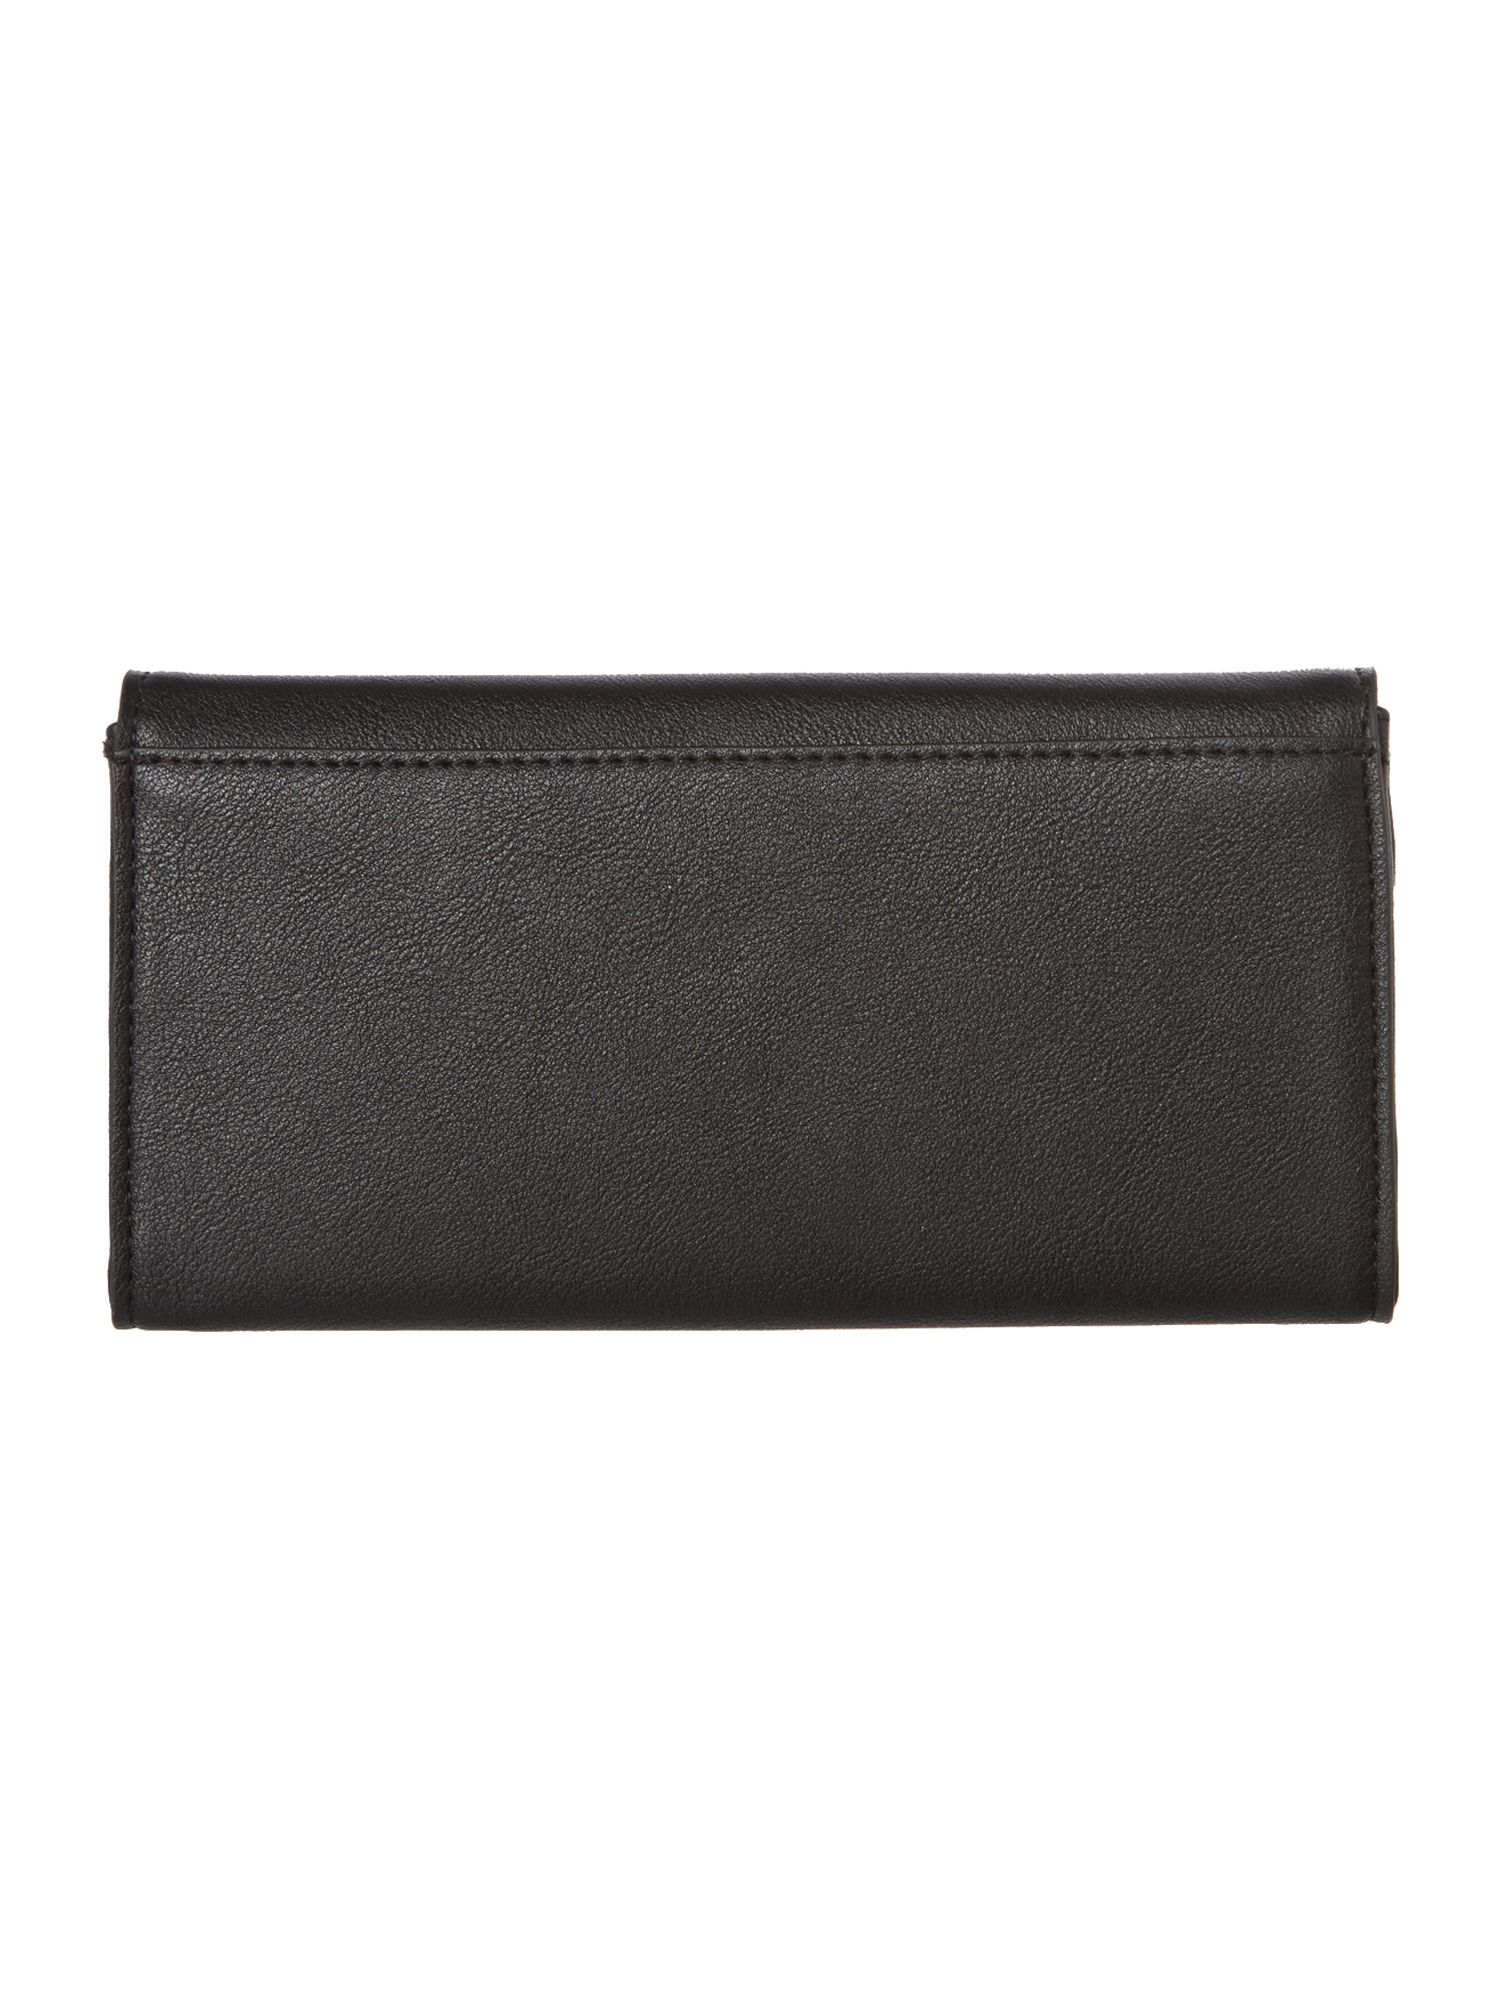 Adele large black flap over purse